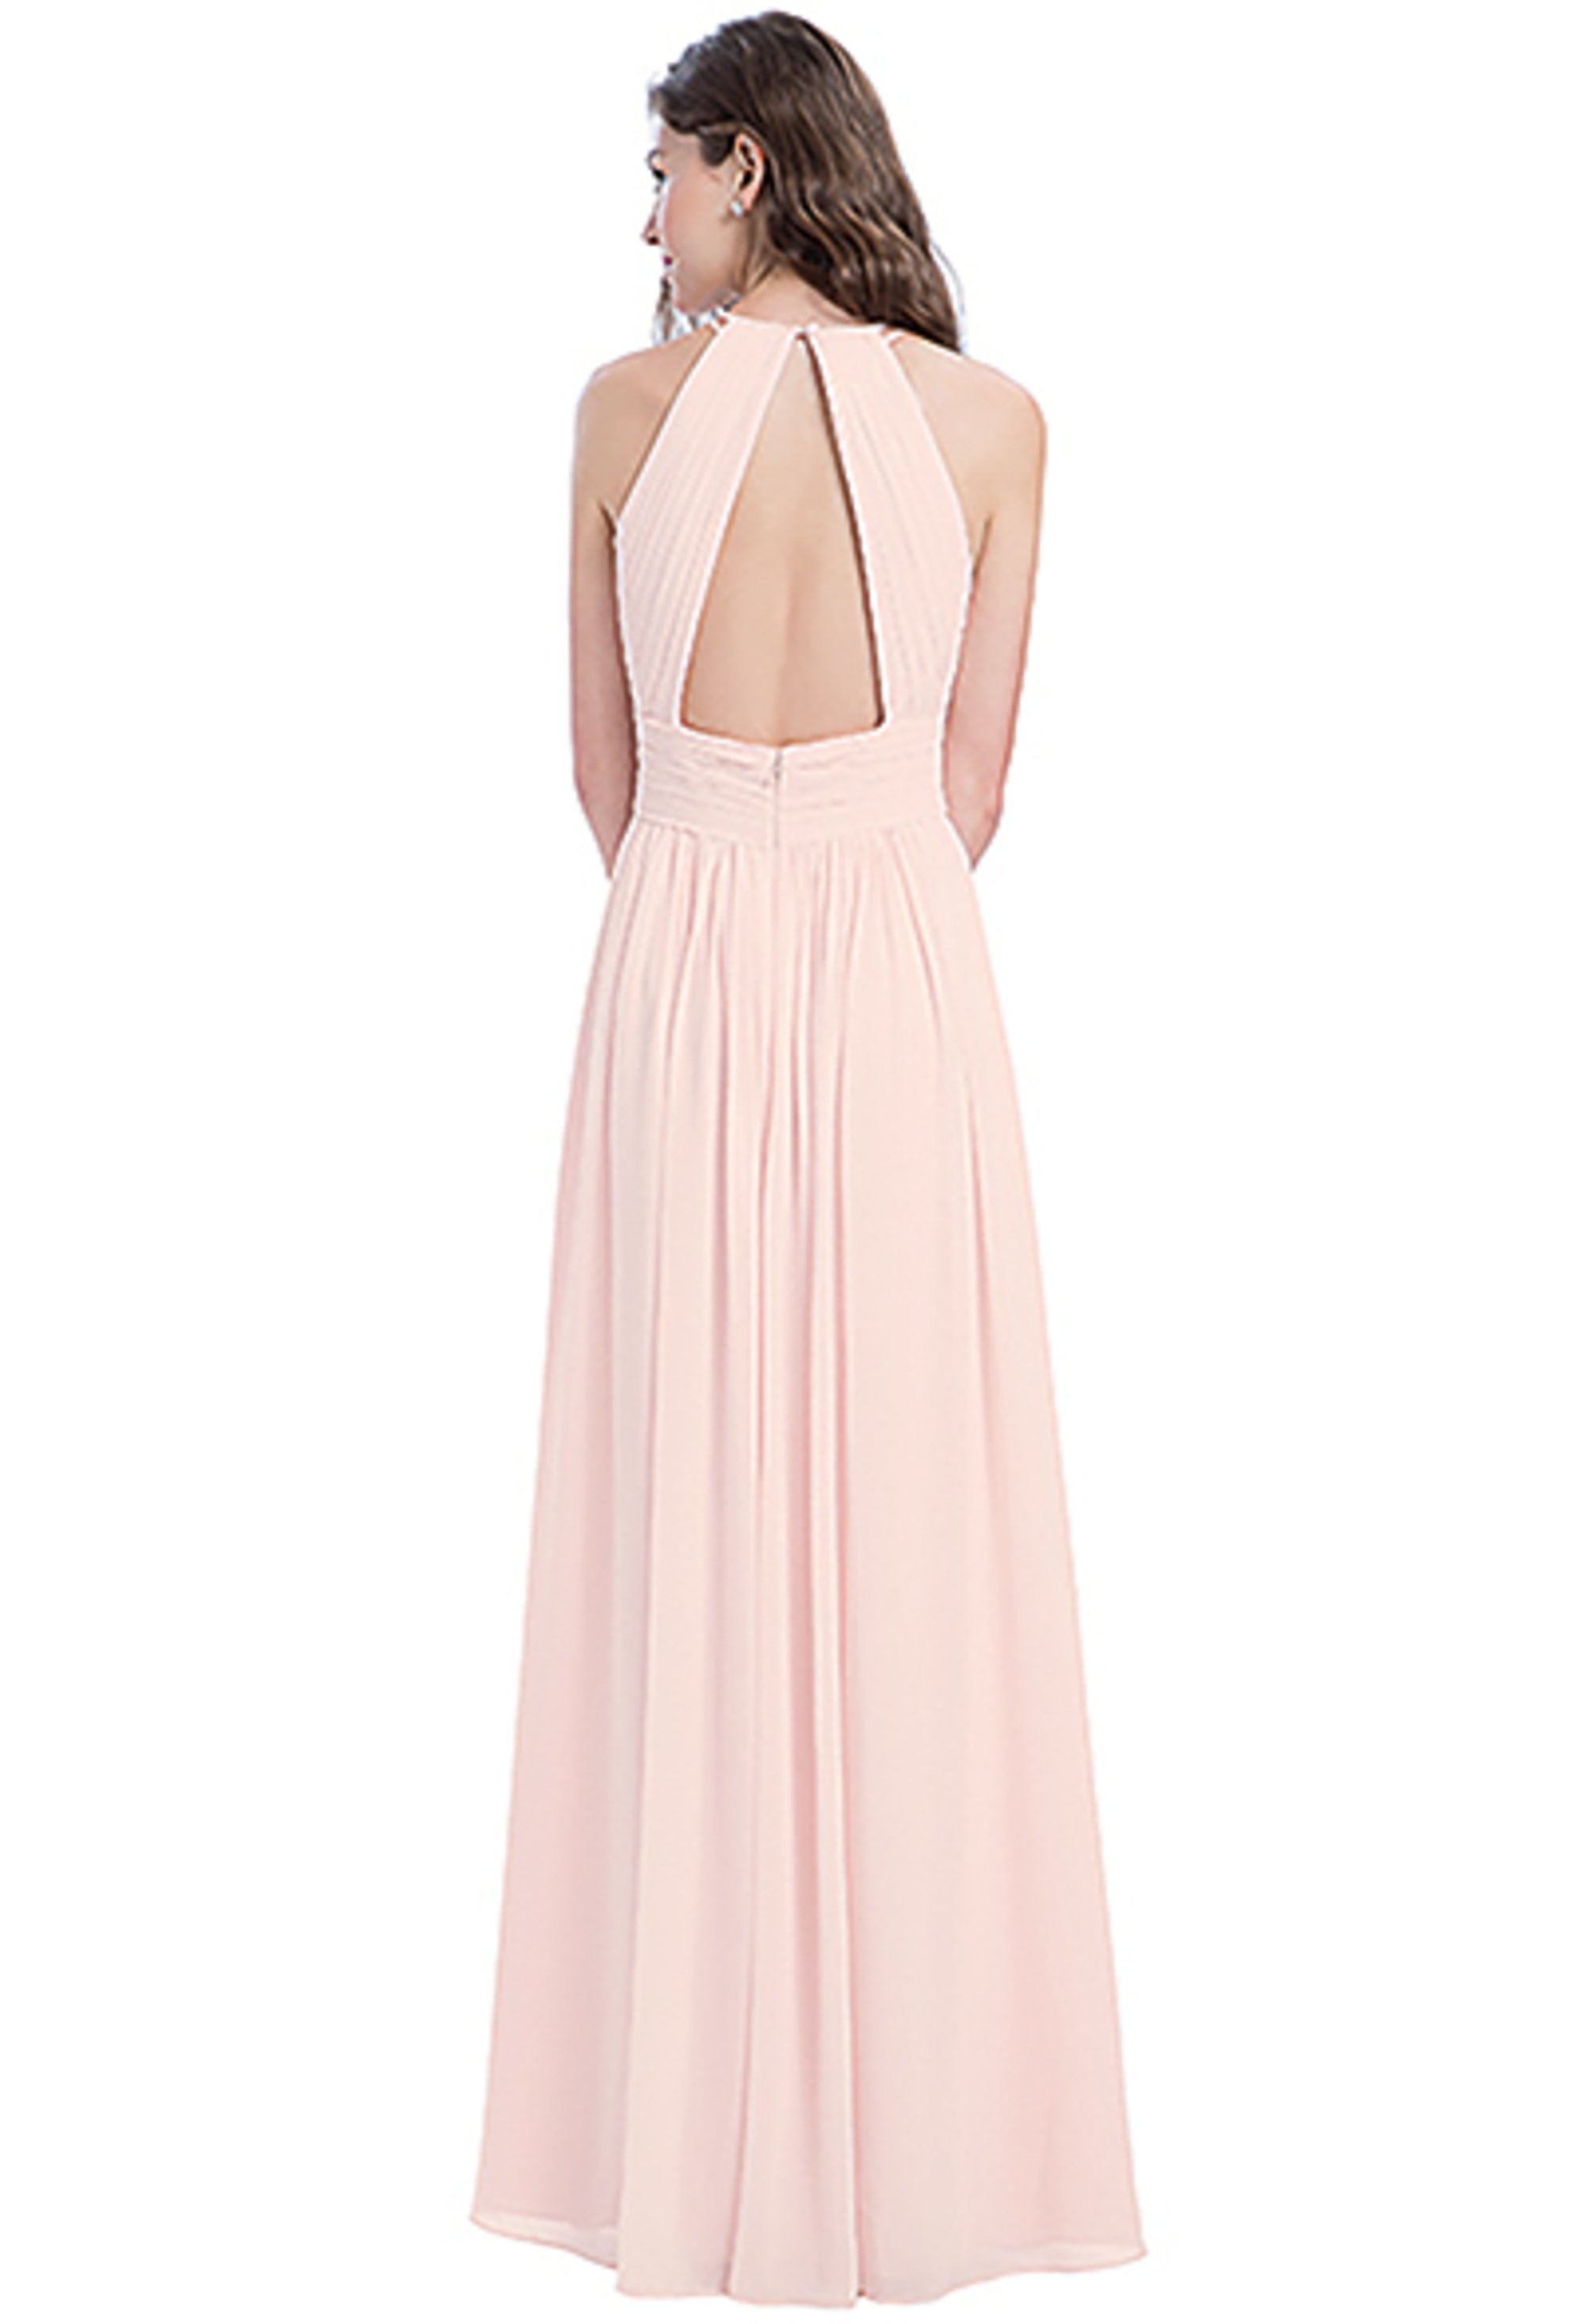 Bill Levkoff CHAMPAGNE Chiffon Sleeveless A-line gown, $240.00 Back